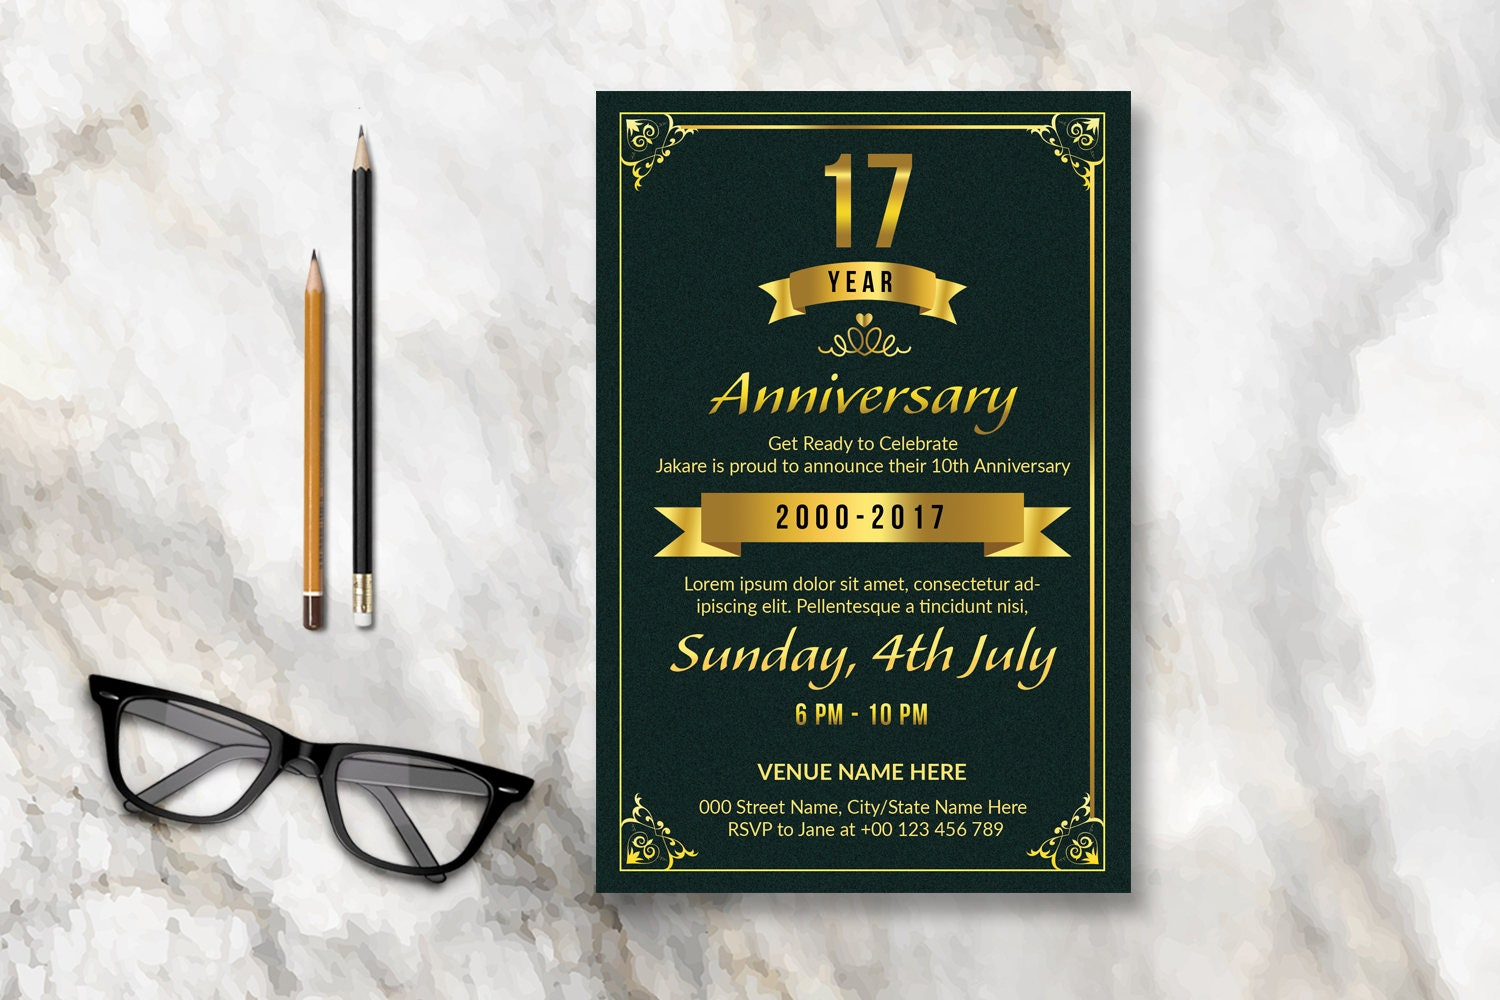 Anniversary Invitation Flyer Template 2 Size 4x6 And 85x11 Etsy